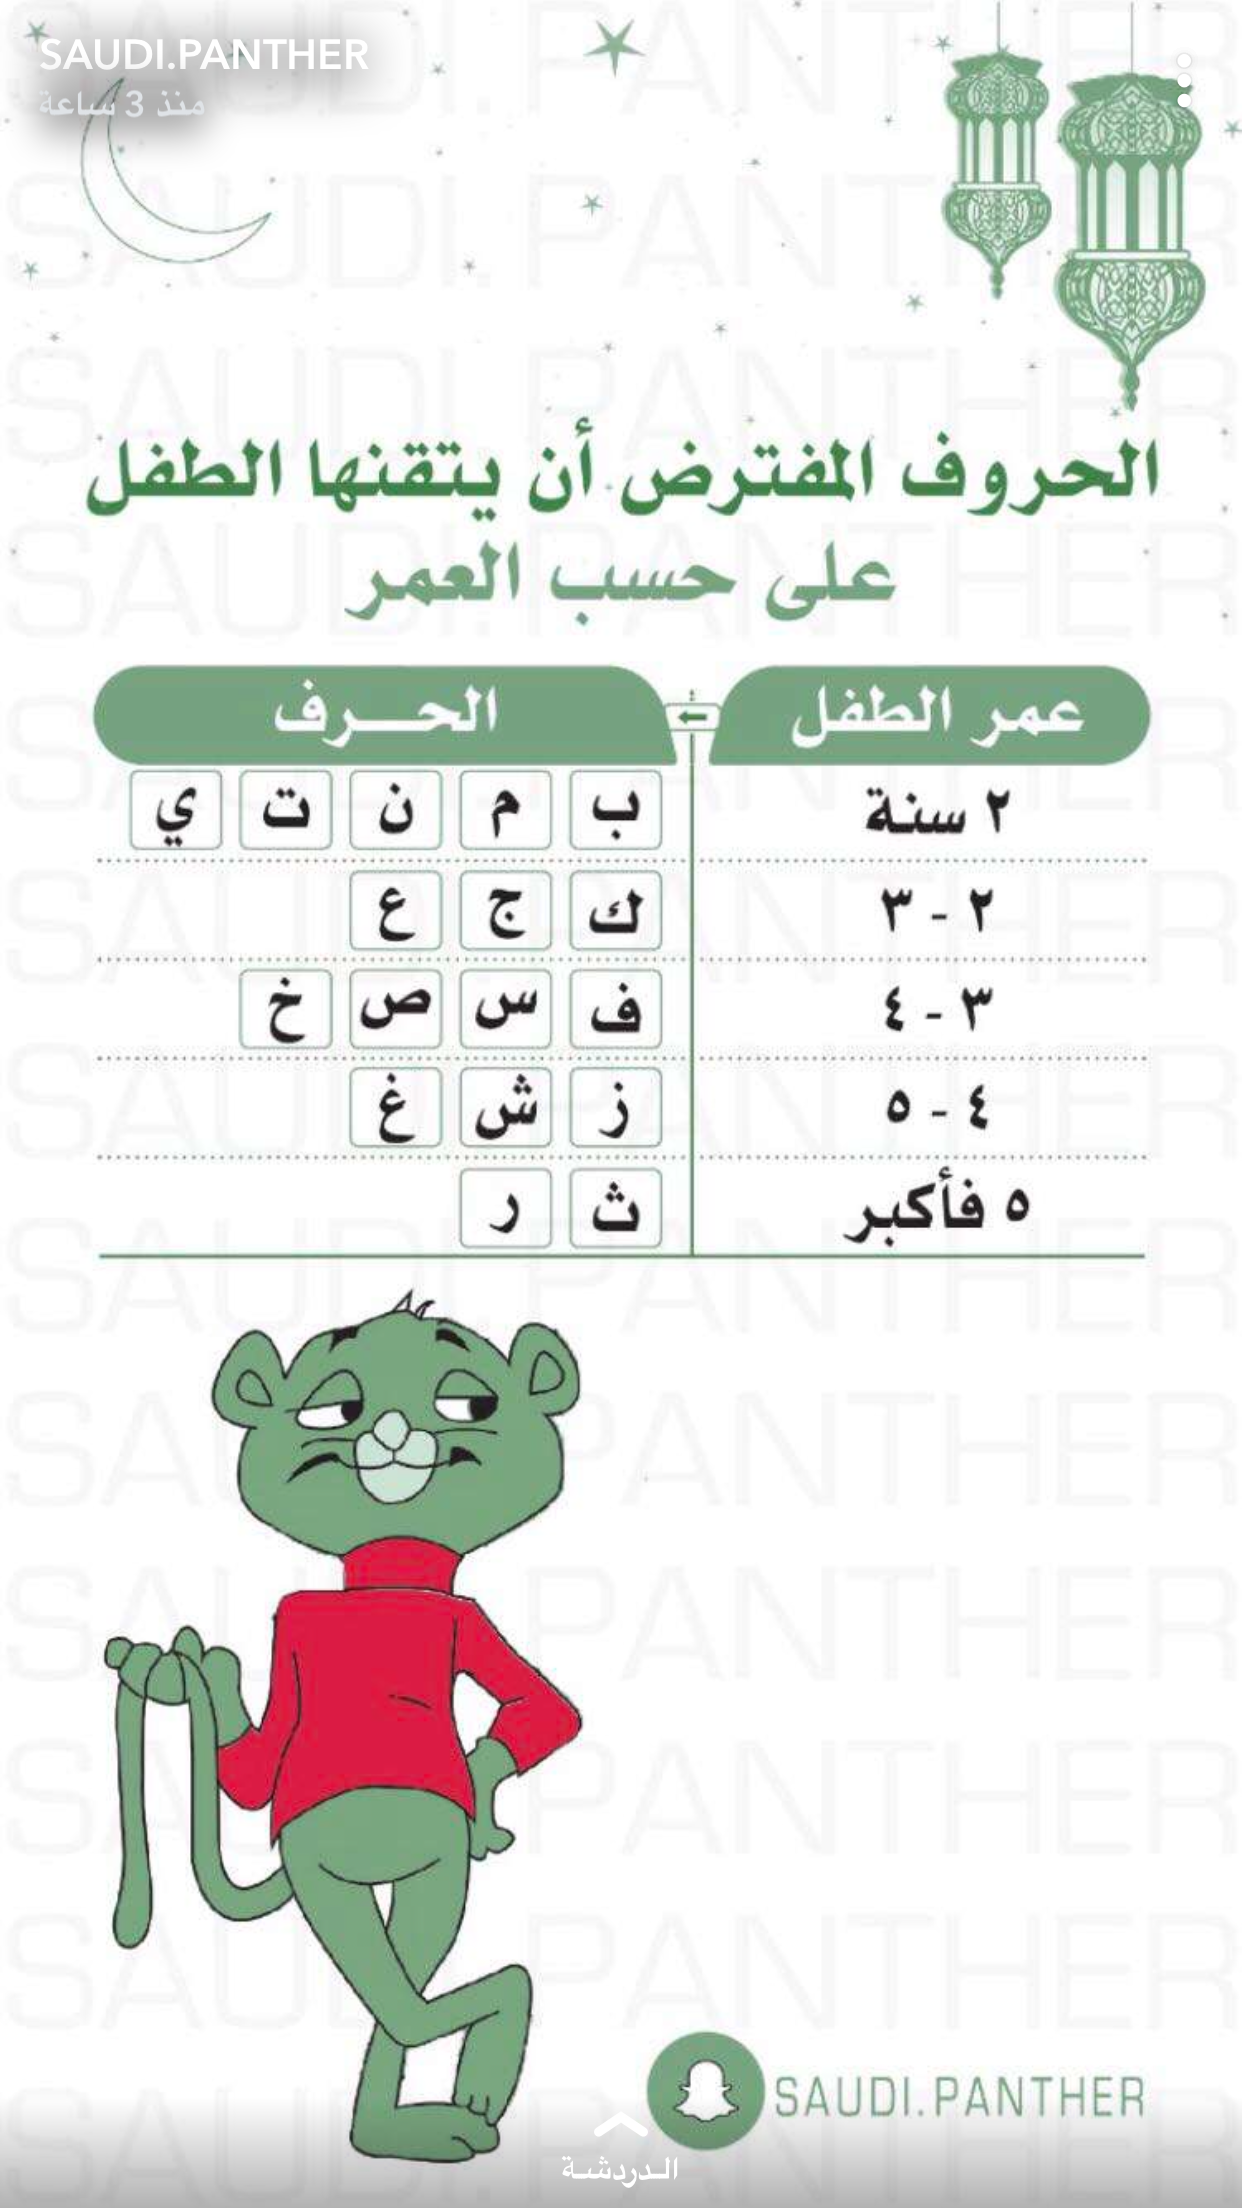 Pin By Mhmad Maher Mhesen On تربيه Kids Education Childrens Education Parenting Education